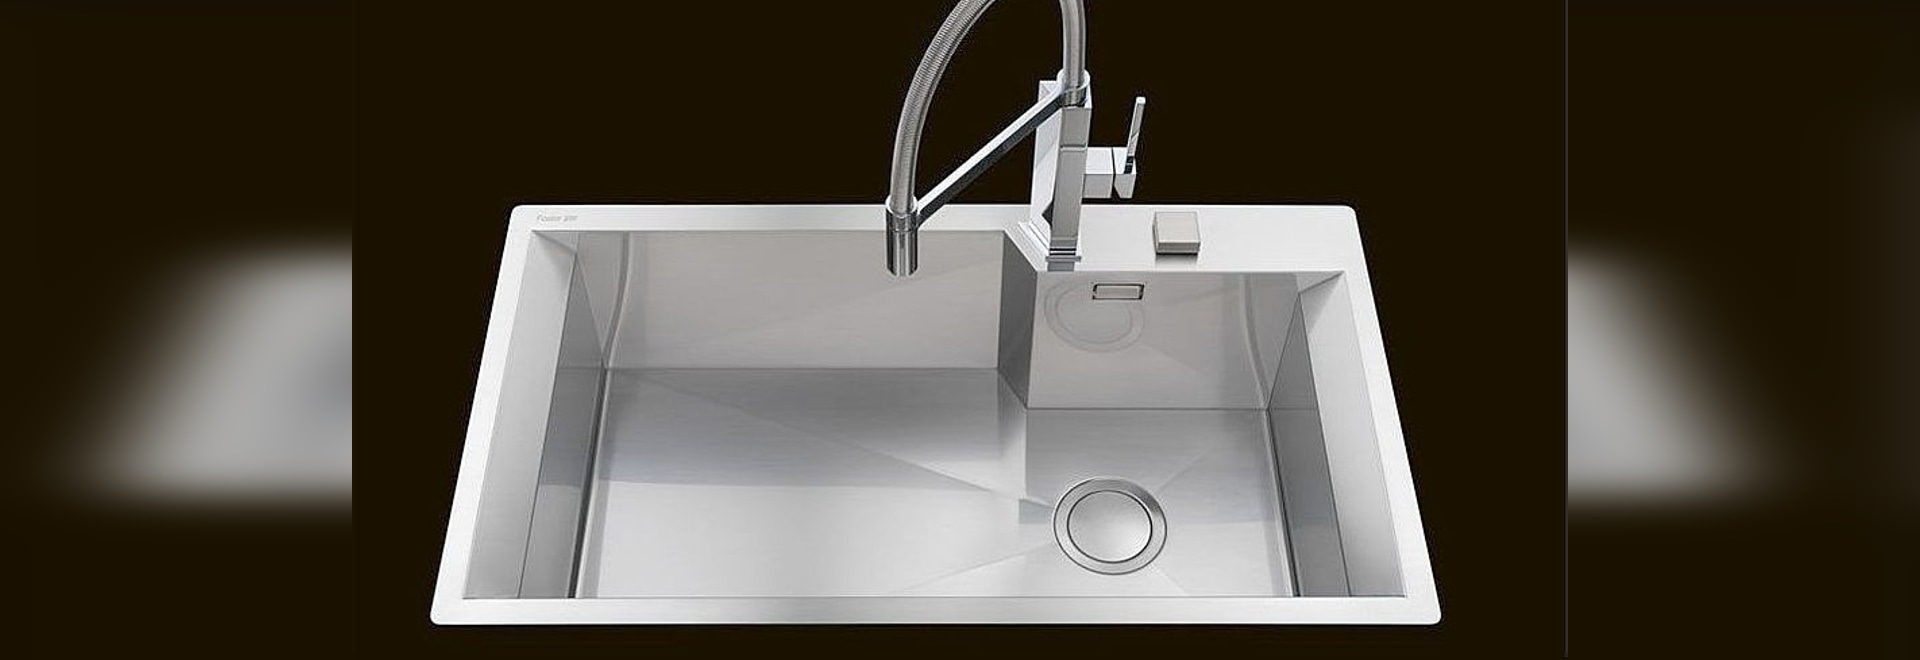 NEW: 1-bowl kitchen sink by Foster - Foster